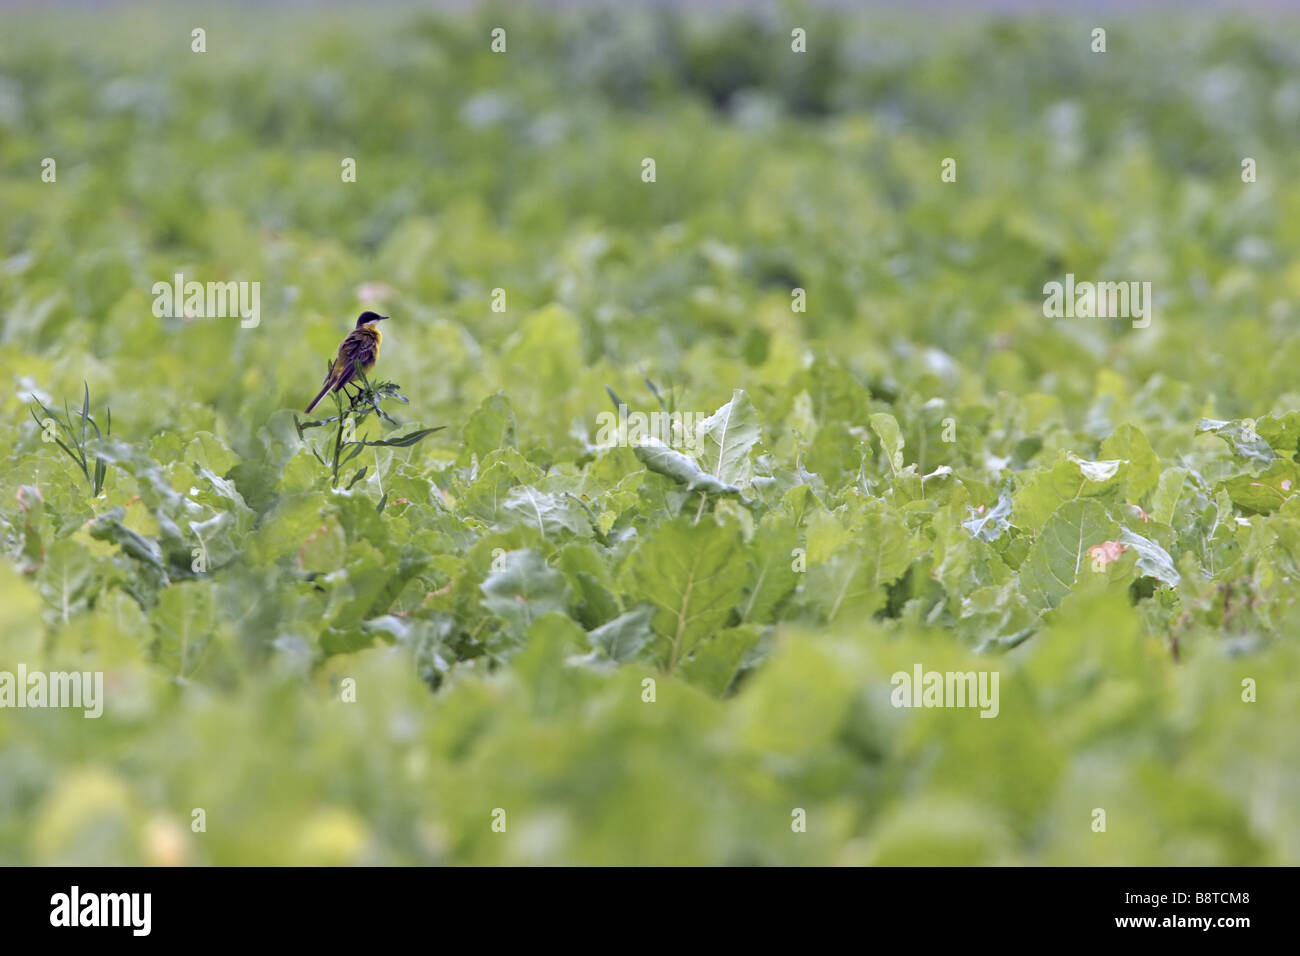 Ashy-headed Wagtail, Yellow wagtail (Motacilla flava cinereocapilla), sitting in vegetable field, Italy, Apulia, - Stock Image